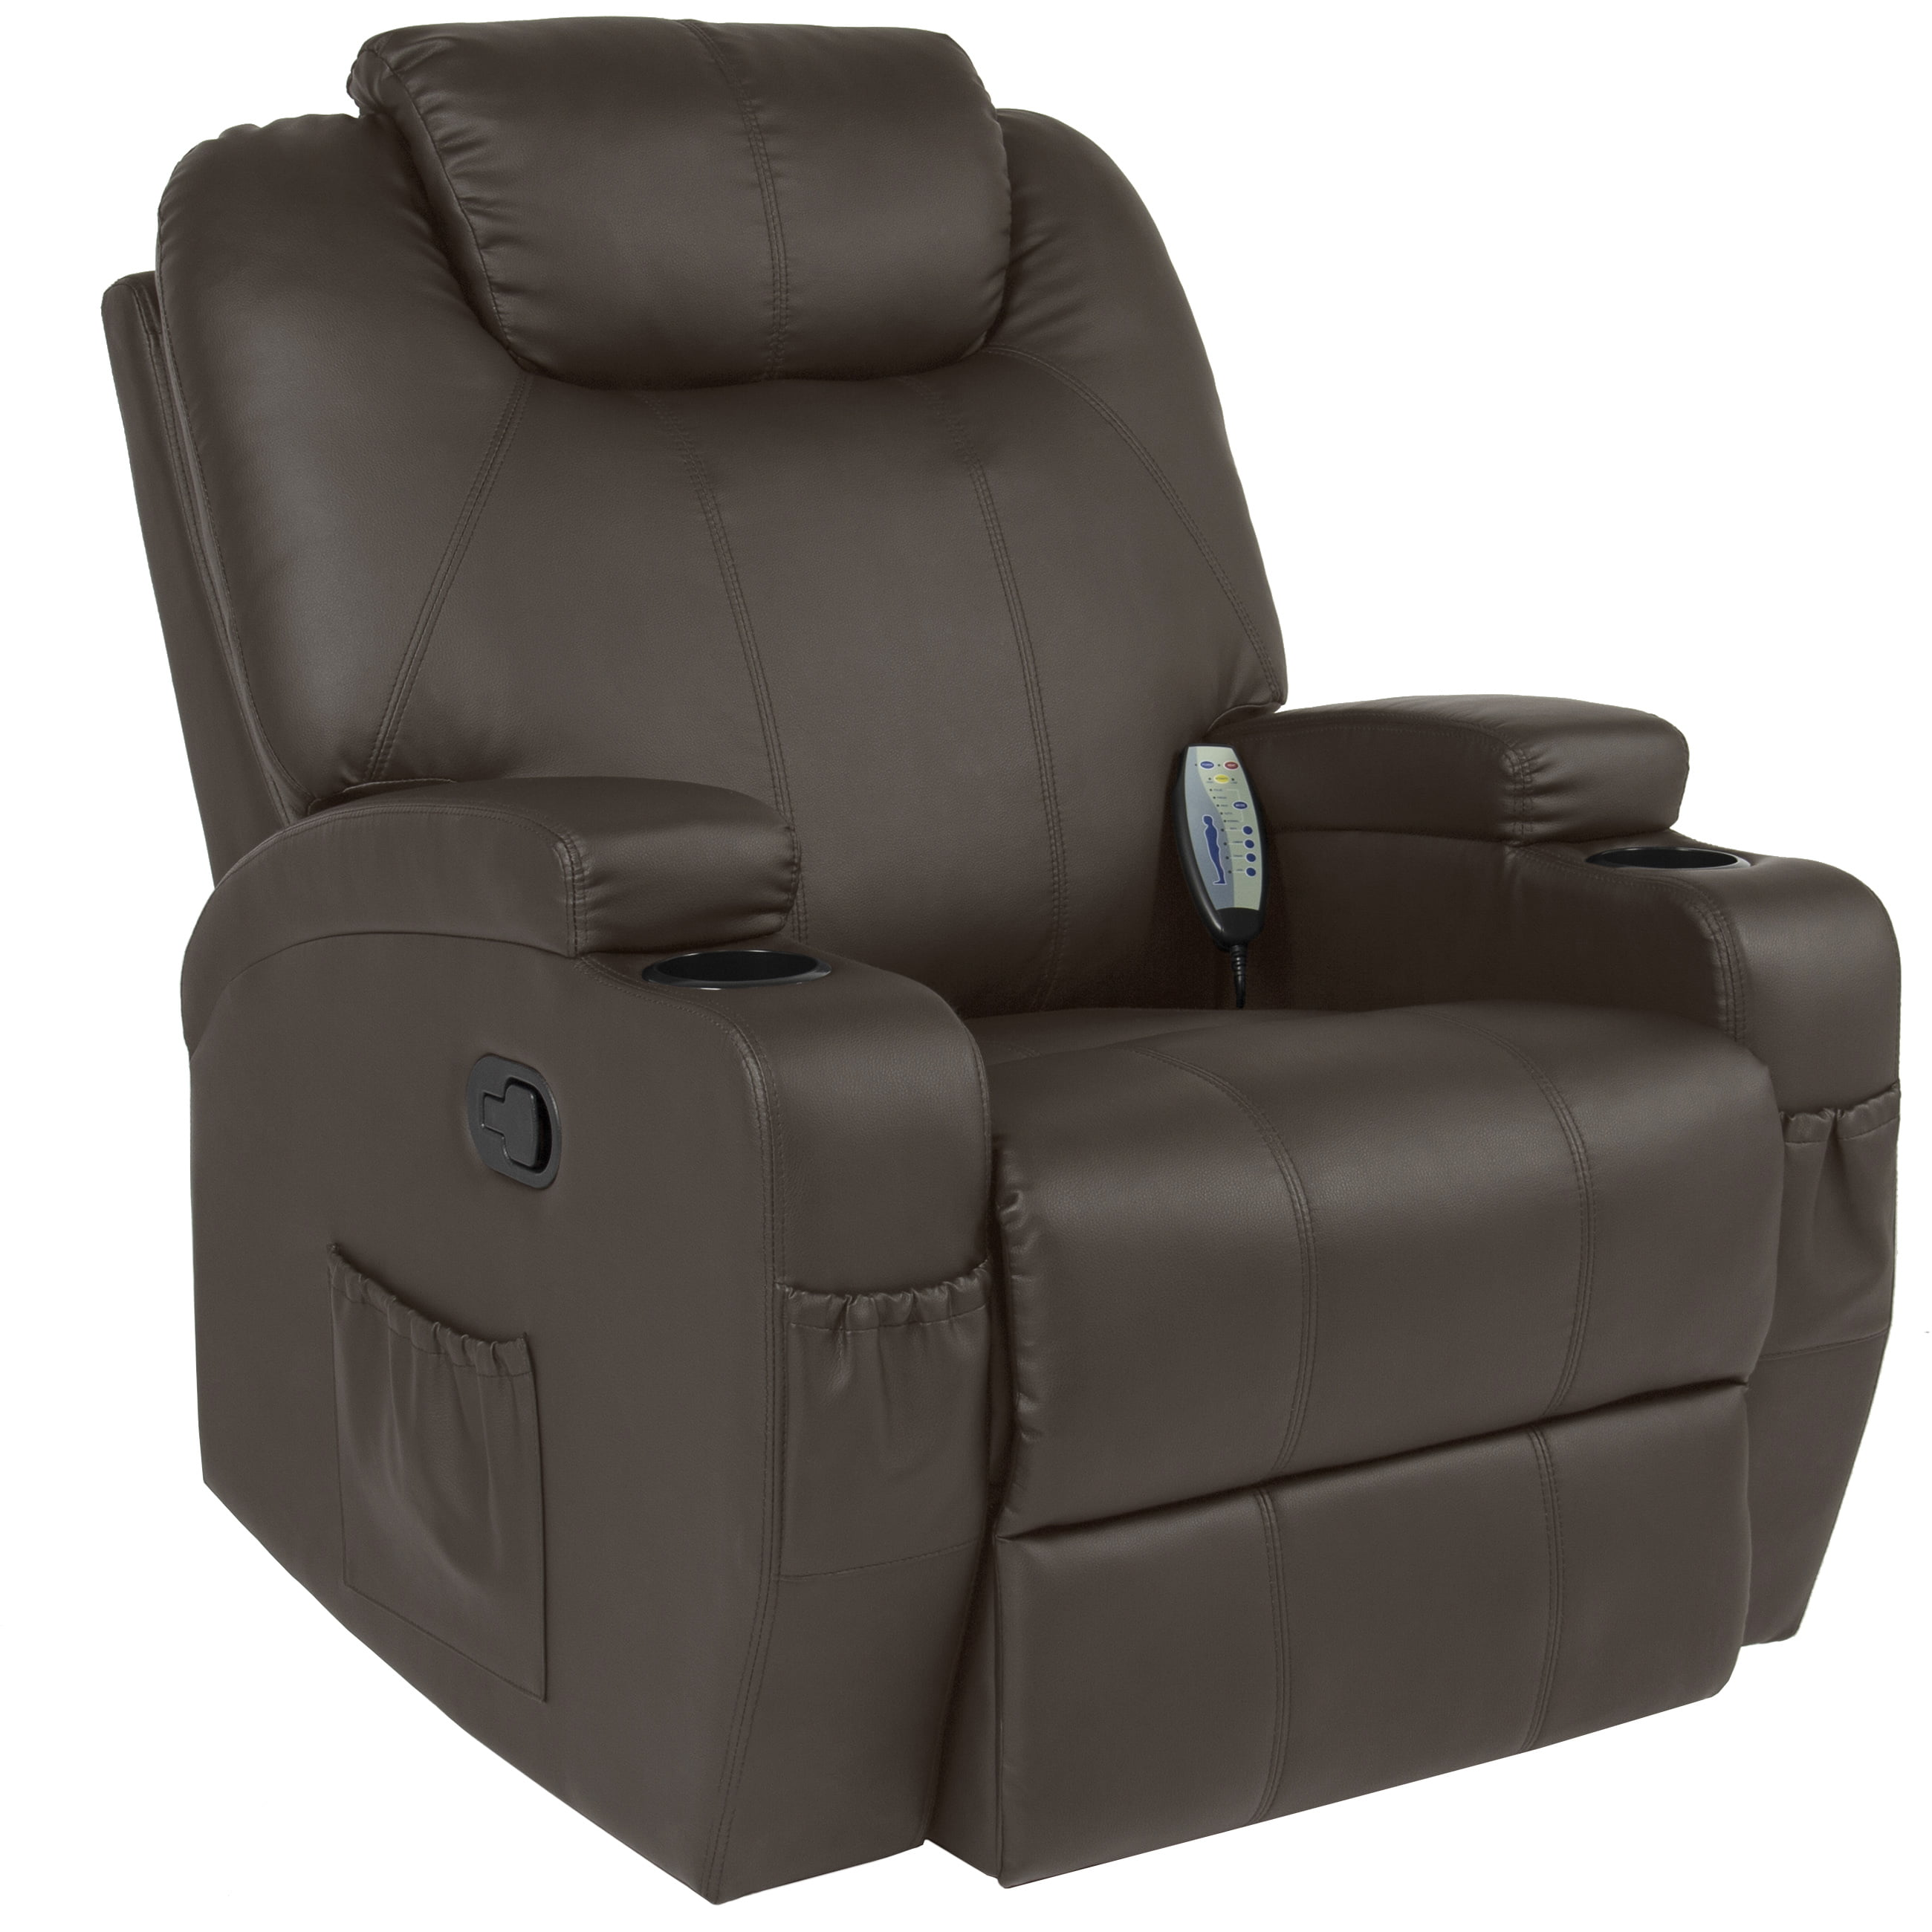 Best Choice Products Executive Swivel Massage Recliner Chair w  Remote Control, 5 Modes, 2 Cup Holders Brown by Best Choice Products